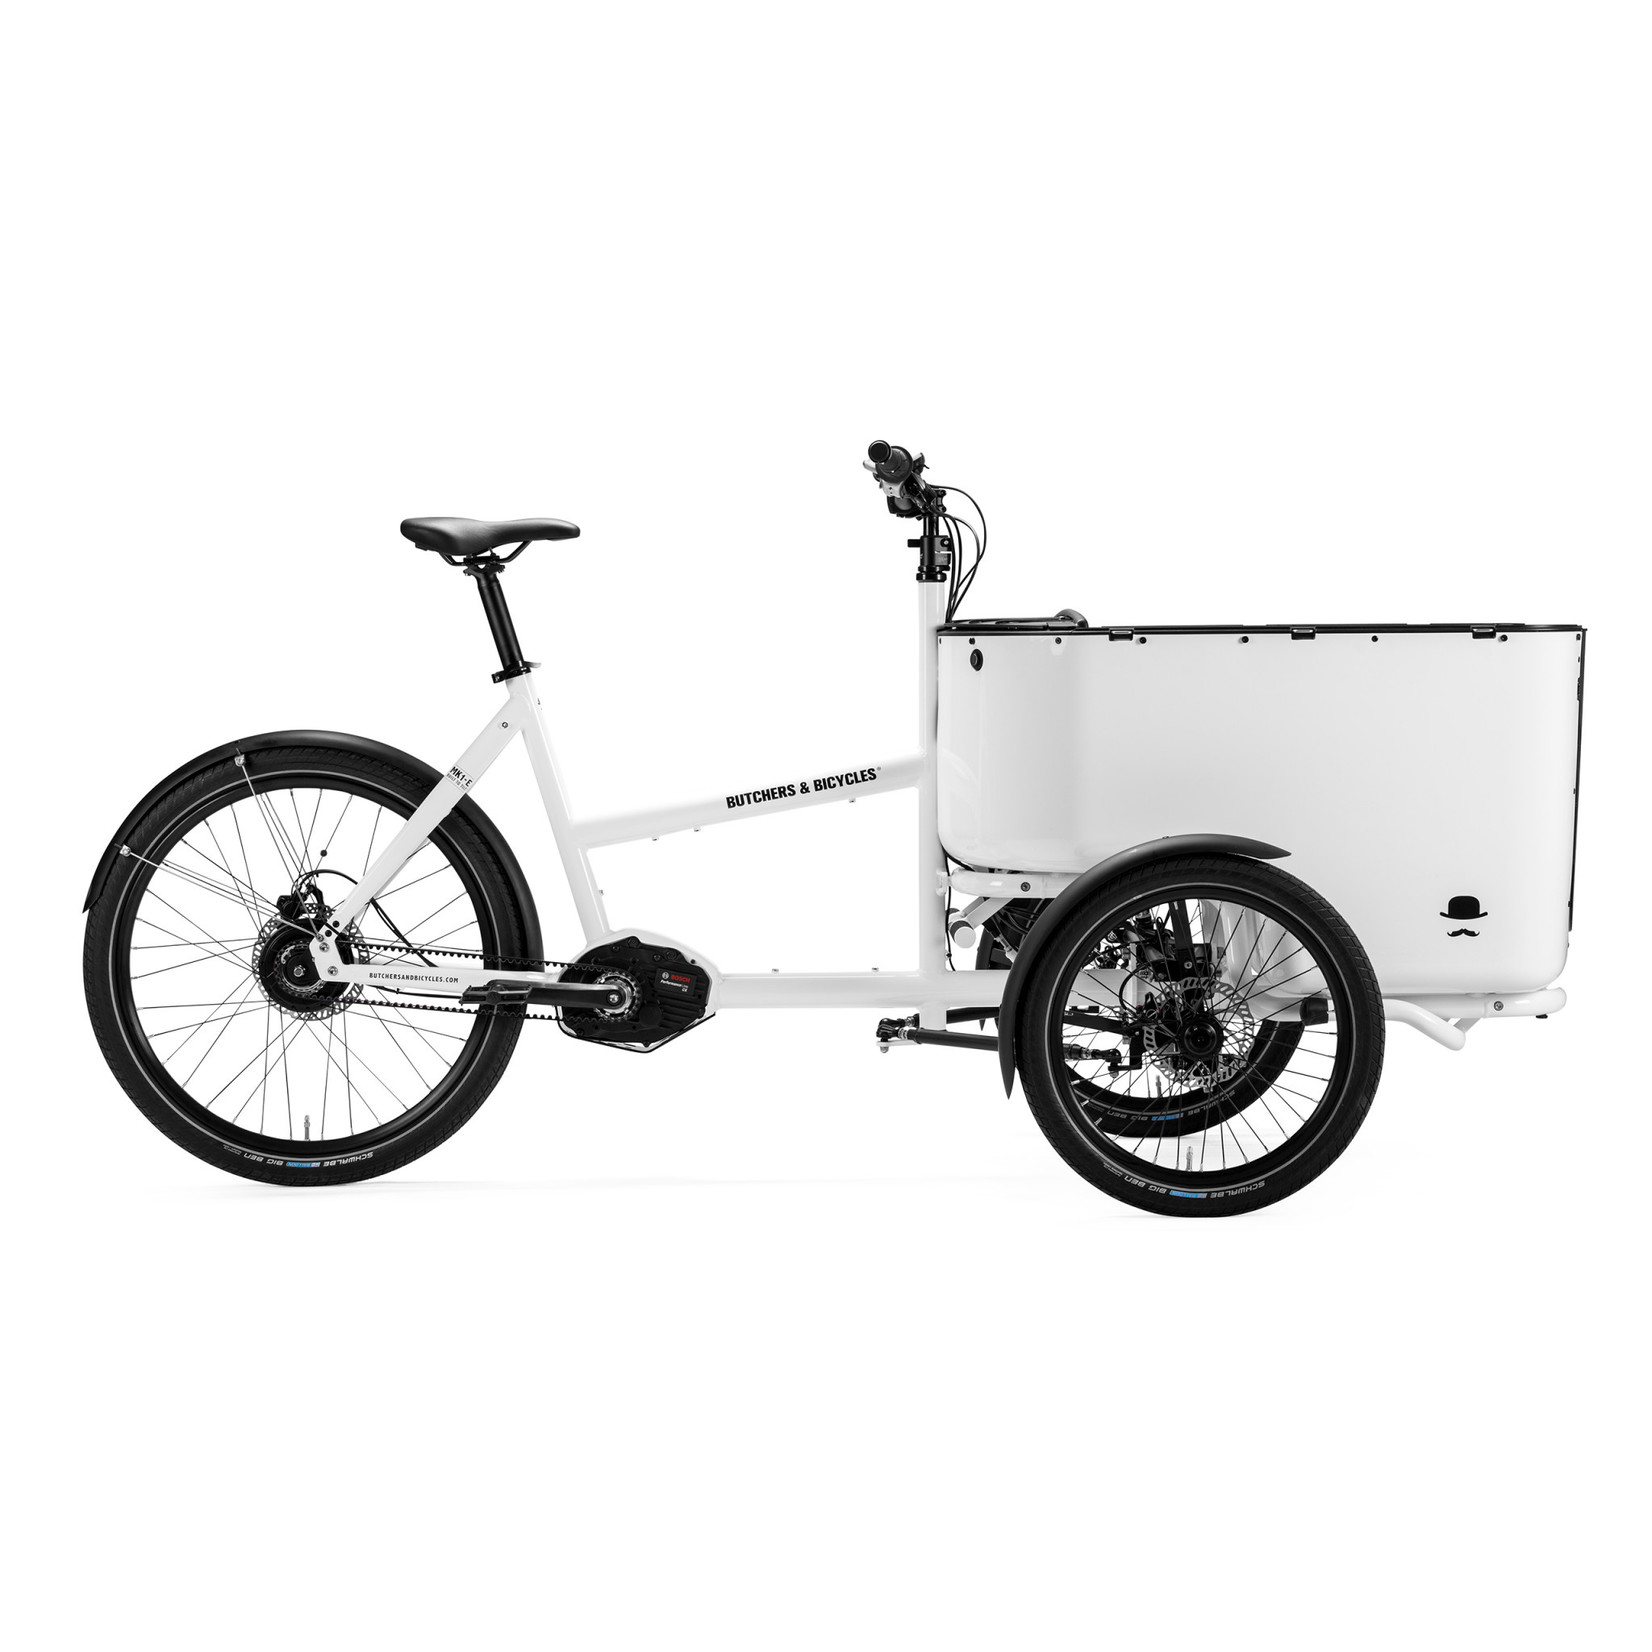 Butchers & Bicycles Butchers & Bicycles MK1-E Automatic